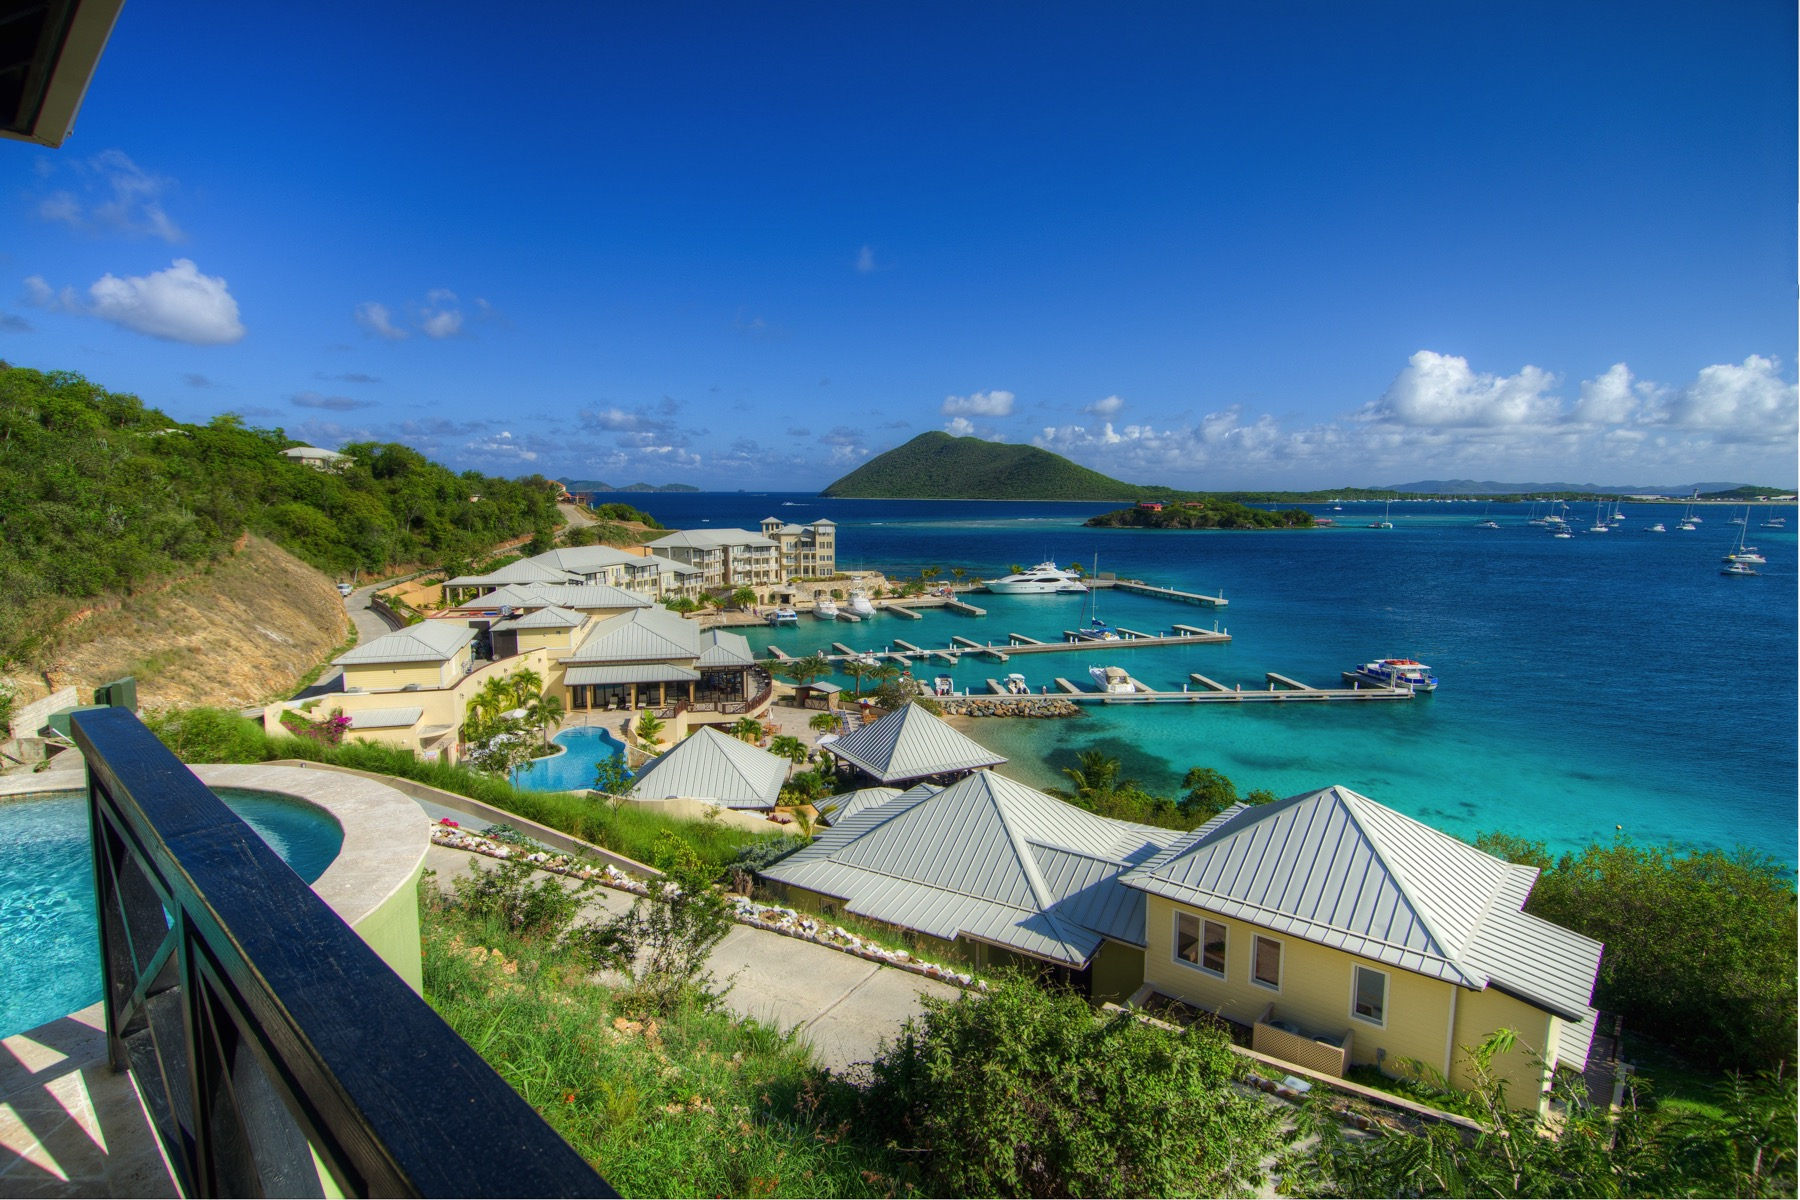 Additional photo for property listing at Mariner House Little Scrub, スクラブ島 イギリス領ヴァージン諸島